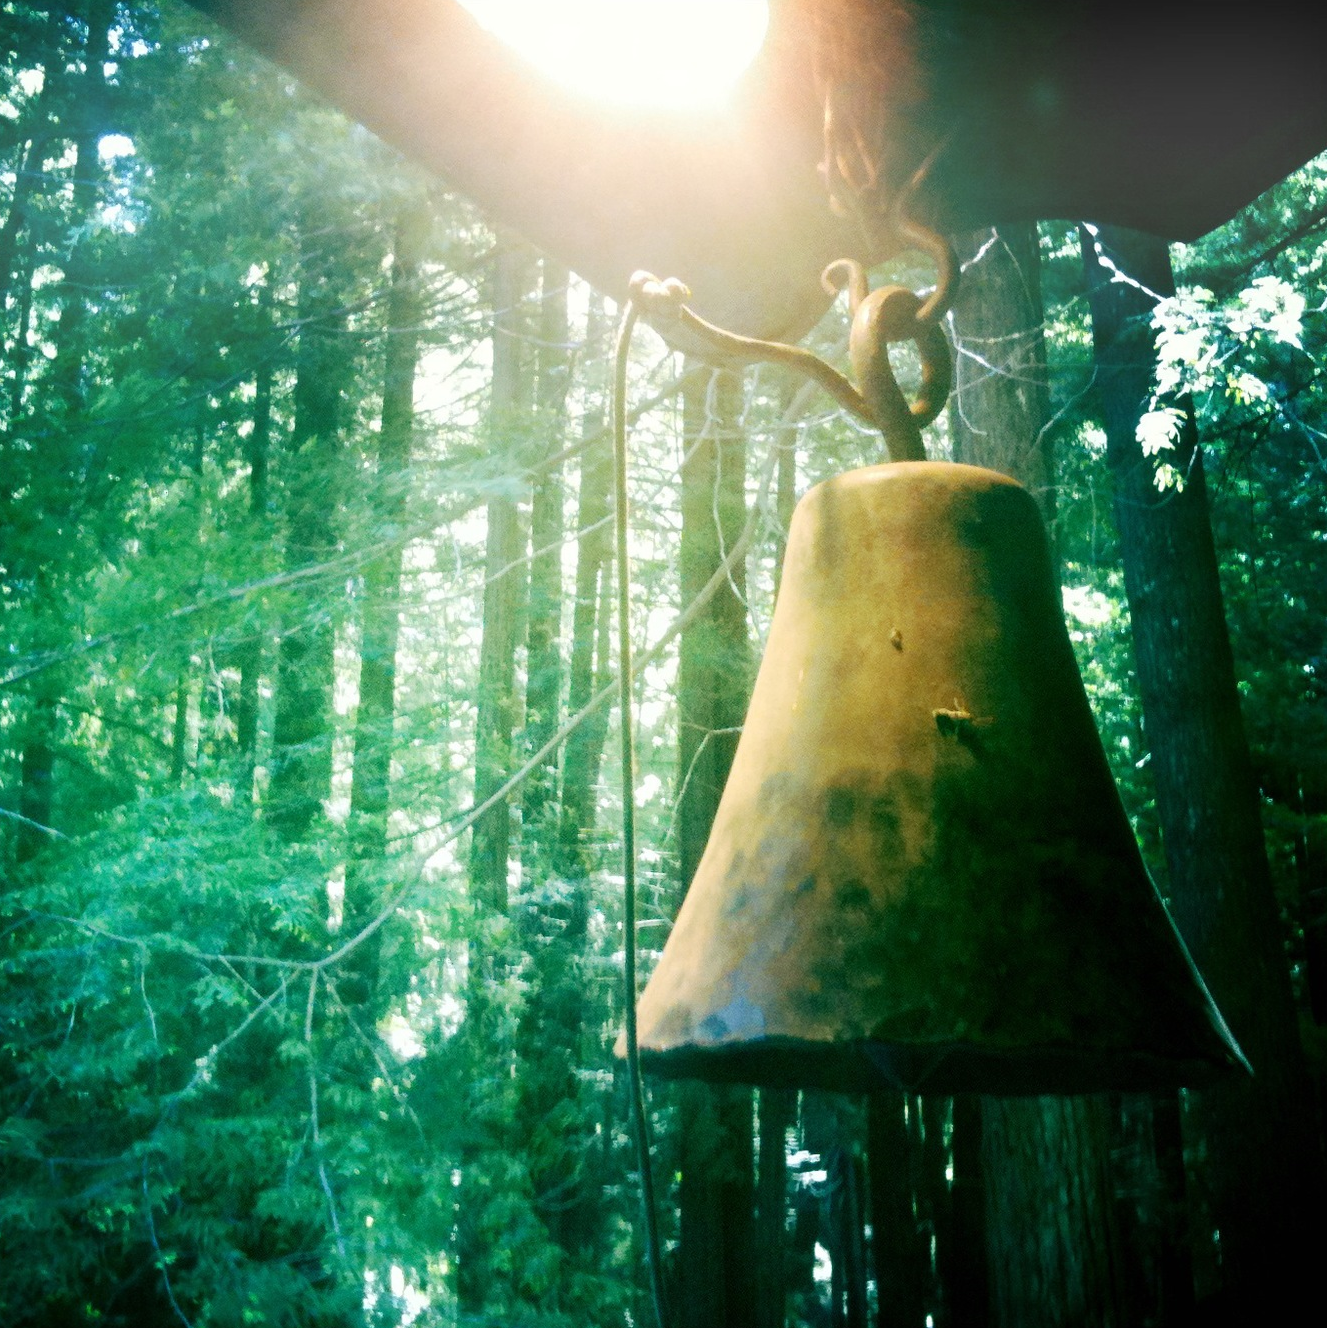 Trees & Bell beautiful image.JPG